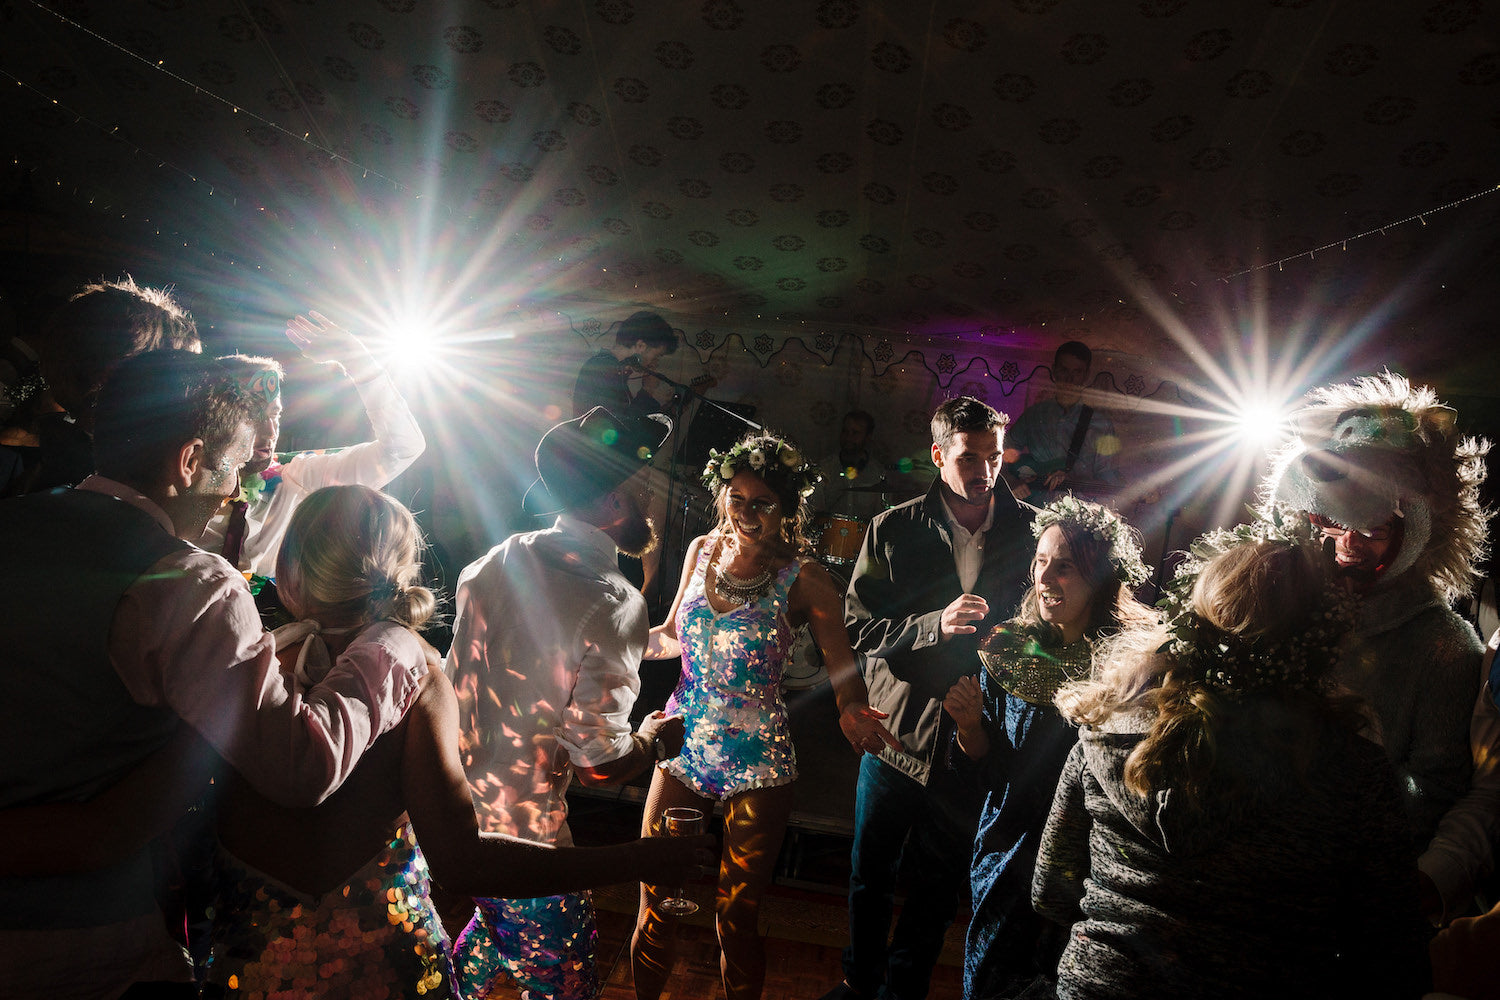 A bride and groom wearing matching white sequin outfits dance together surrounded by friends at their wedding reception